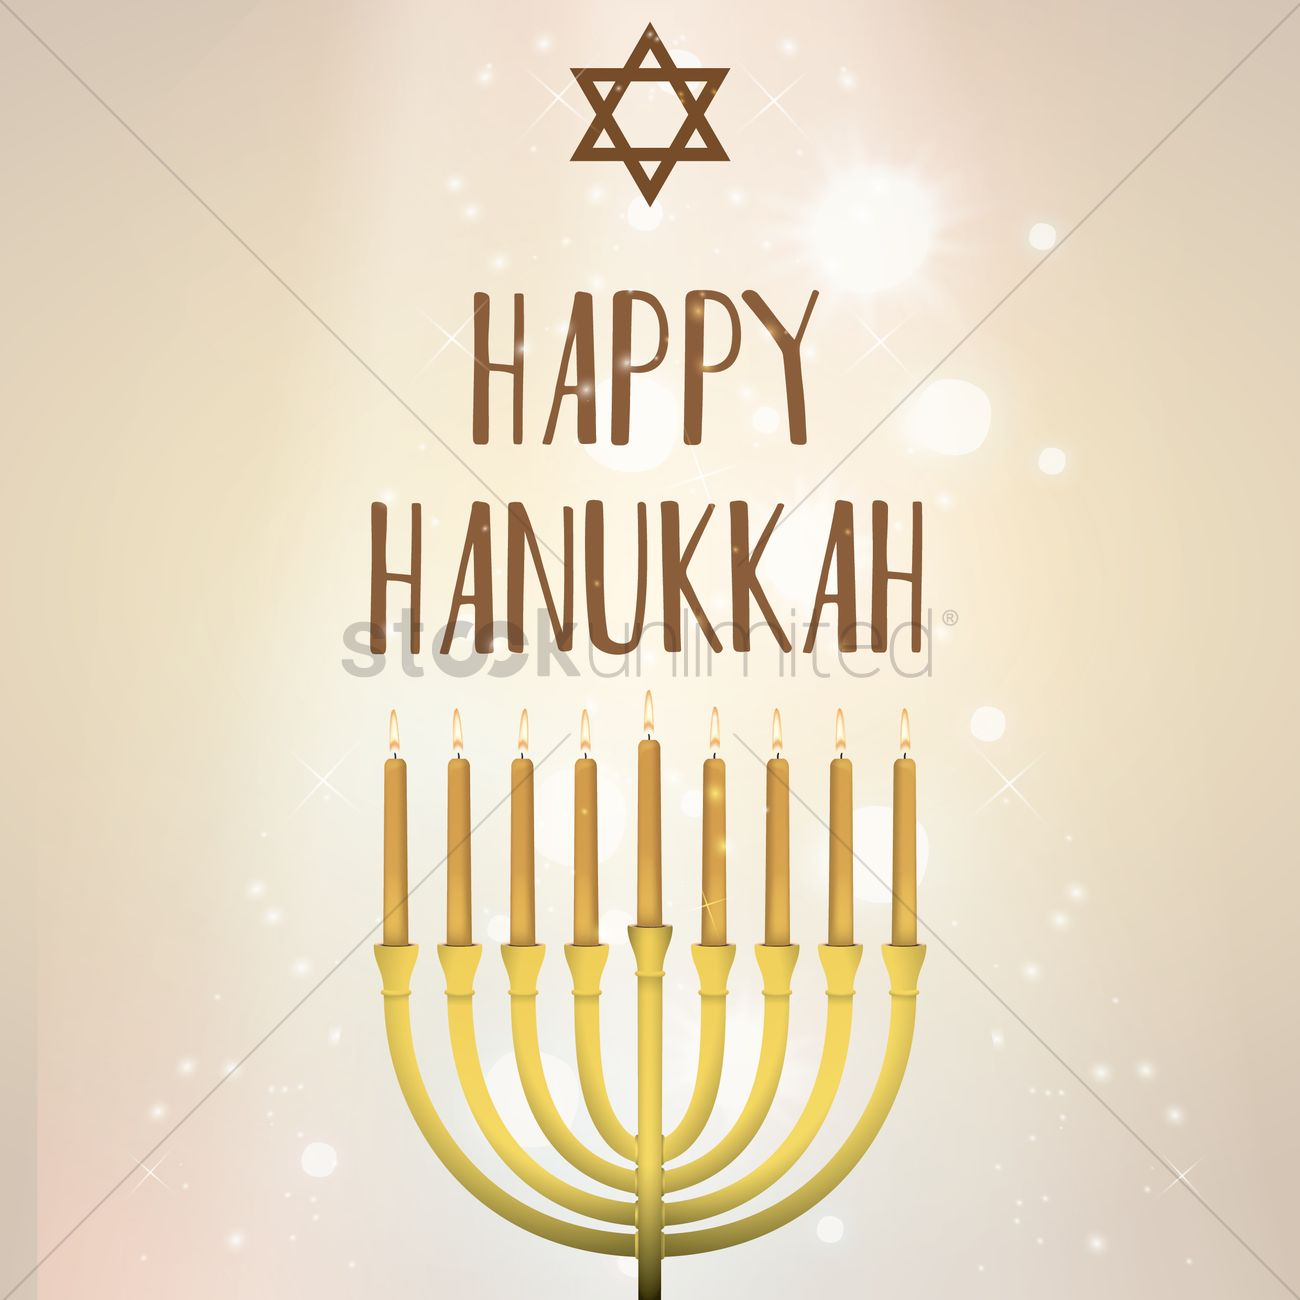 Happy Hanukkah Greeting Design Vector Image 1989478 Stockunlimited